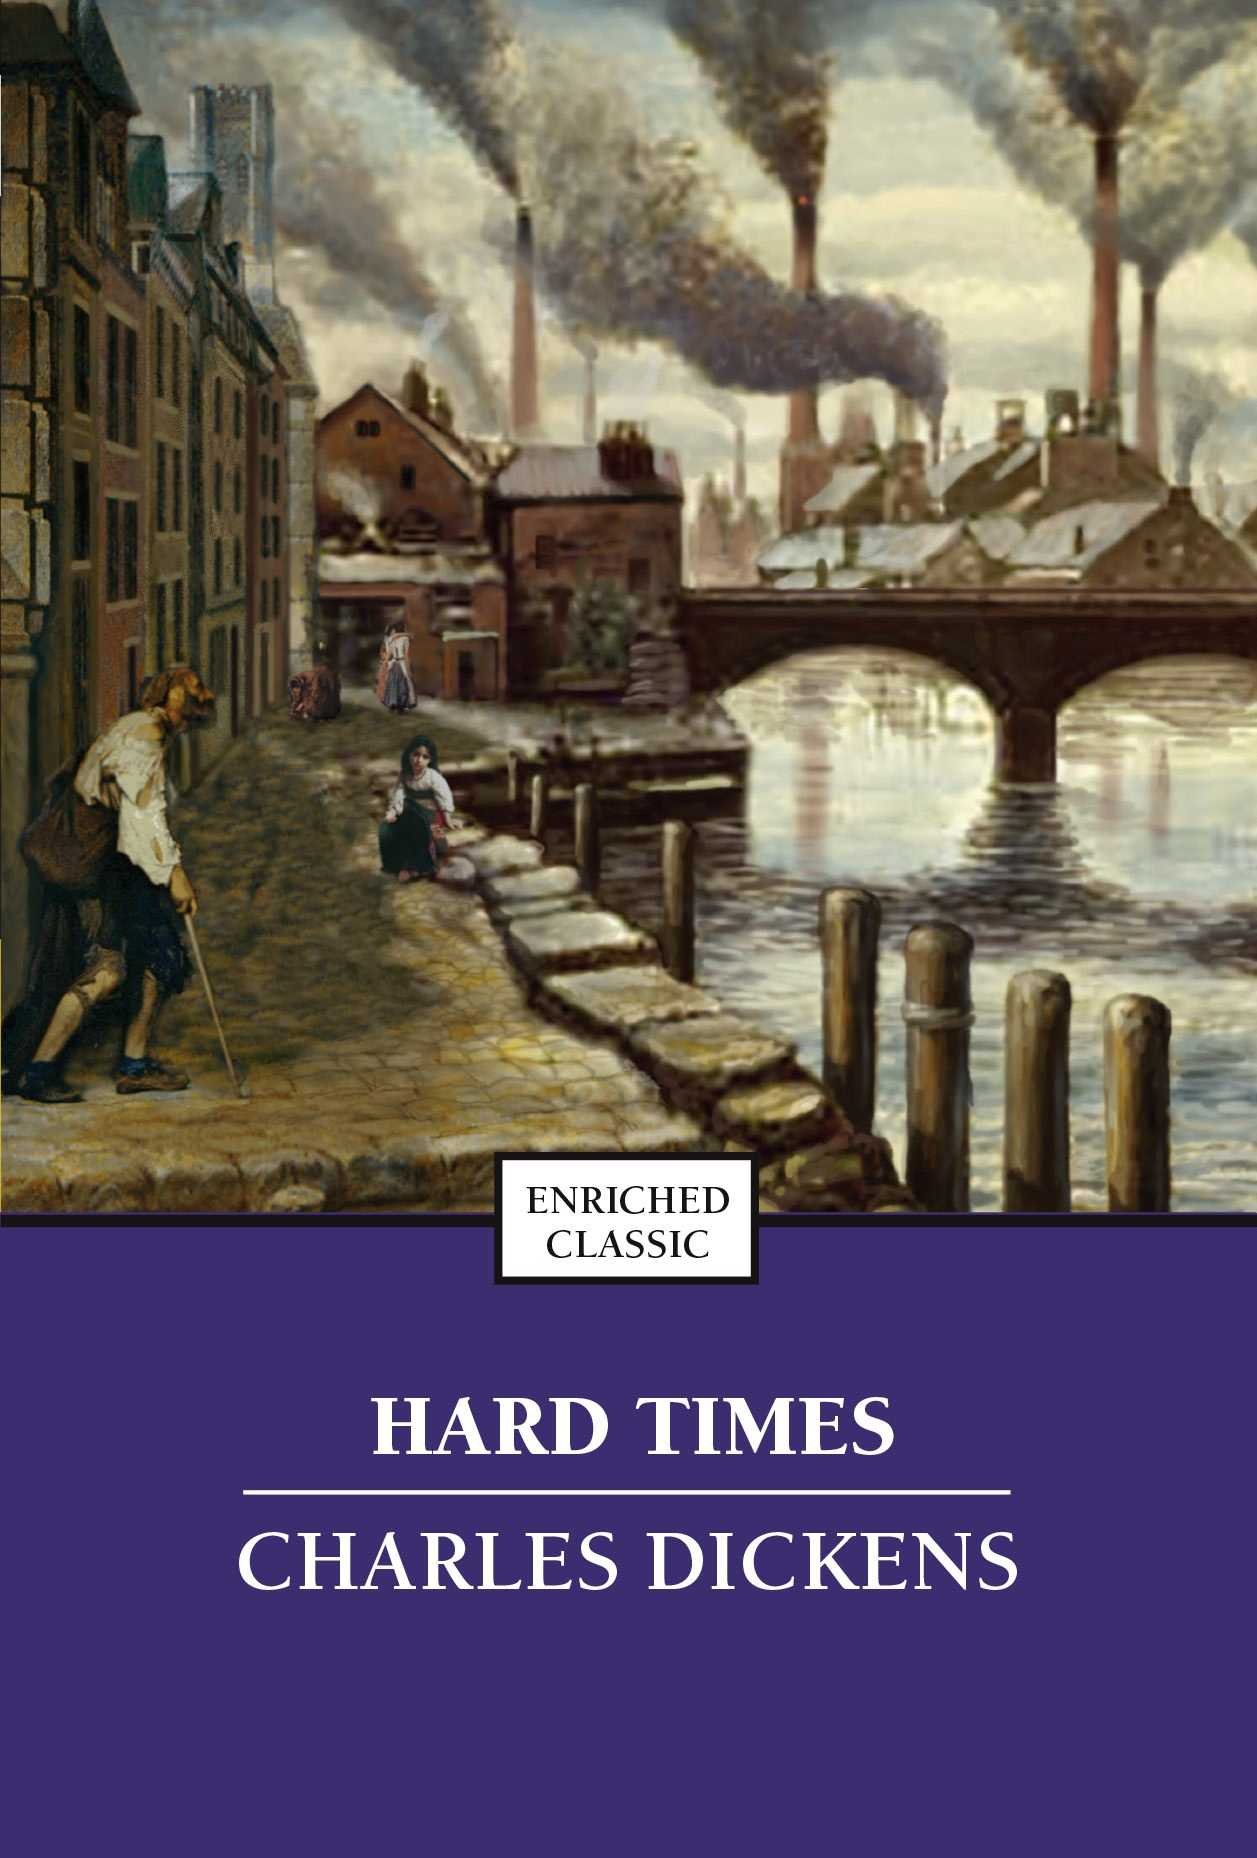 hard times 4 essay Essay hard times outline introduction general info, for example: time and place written: london, 1854 date of publication: pubished in serial instalments in dickens.